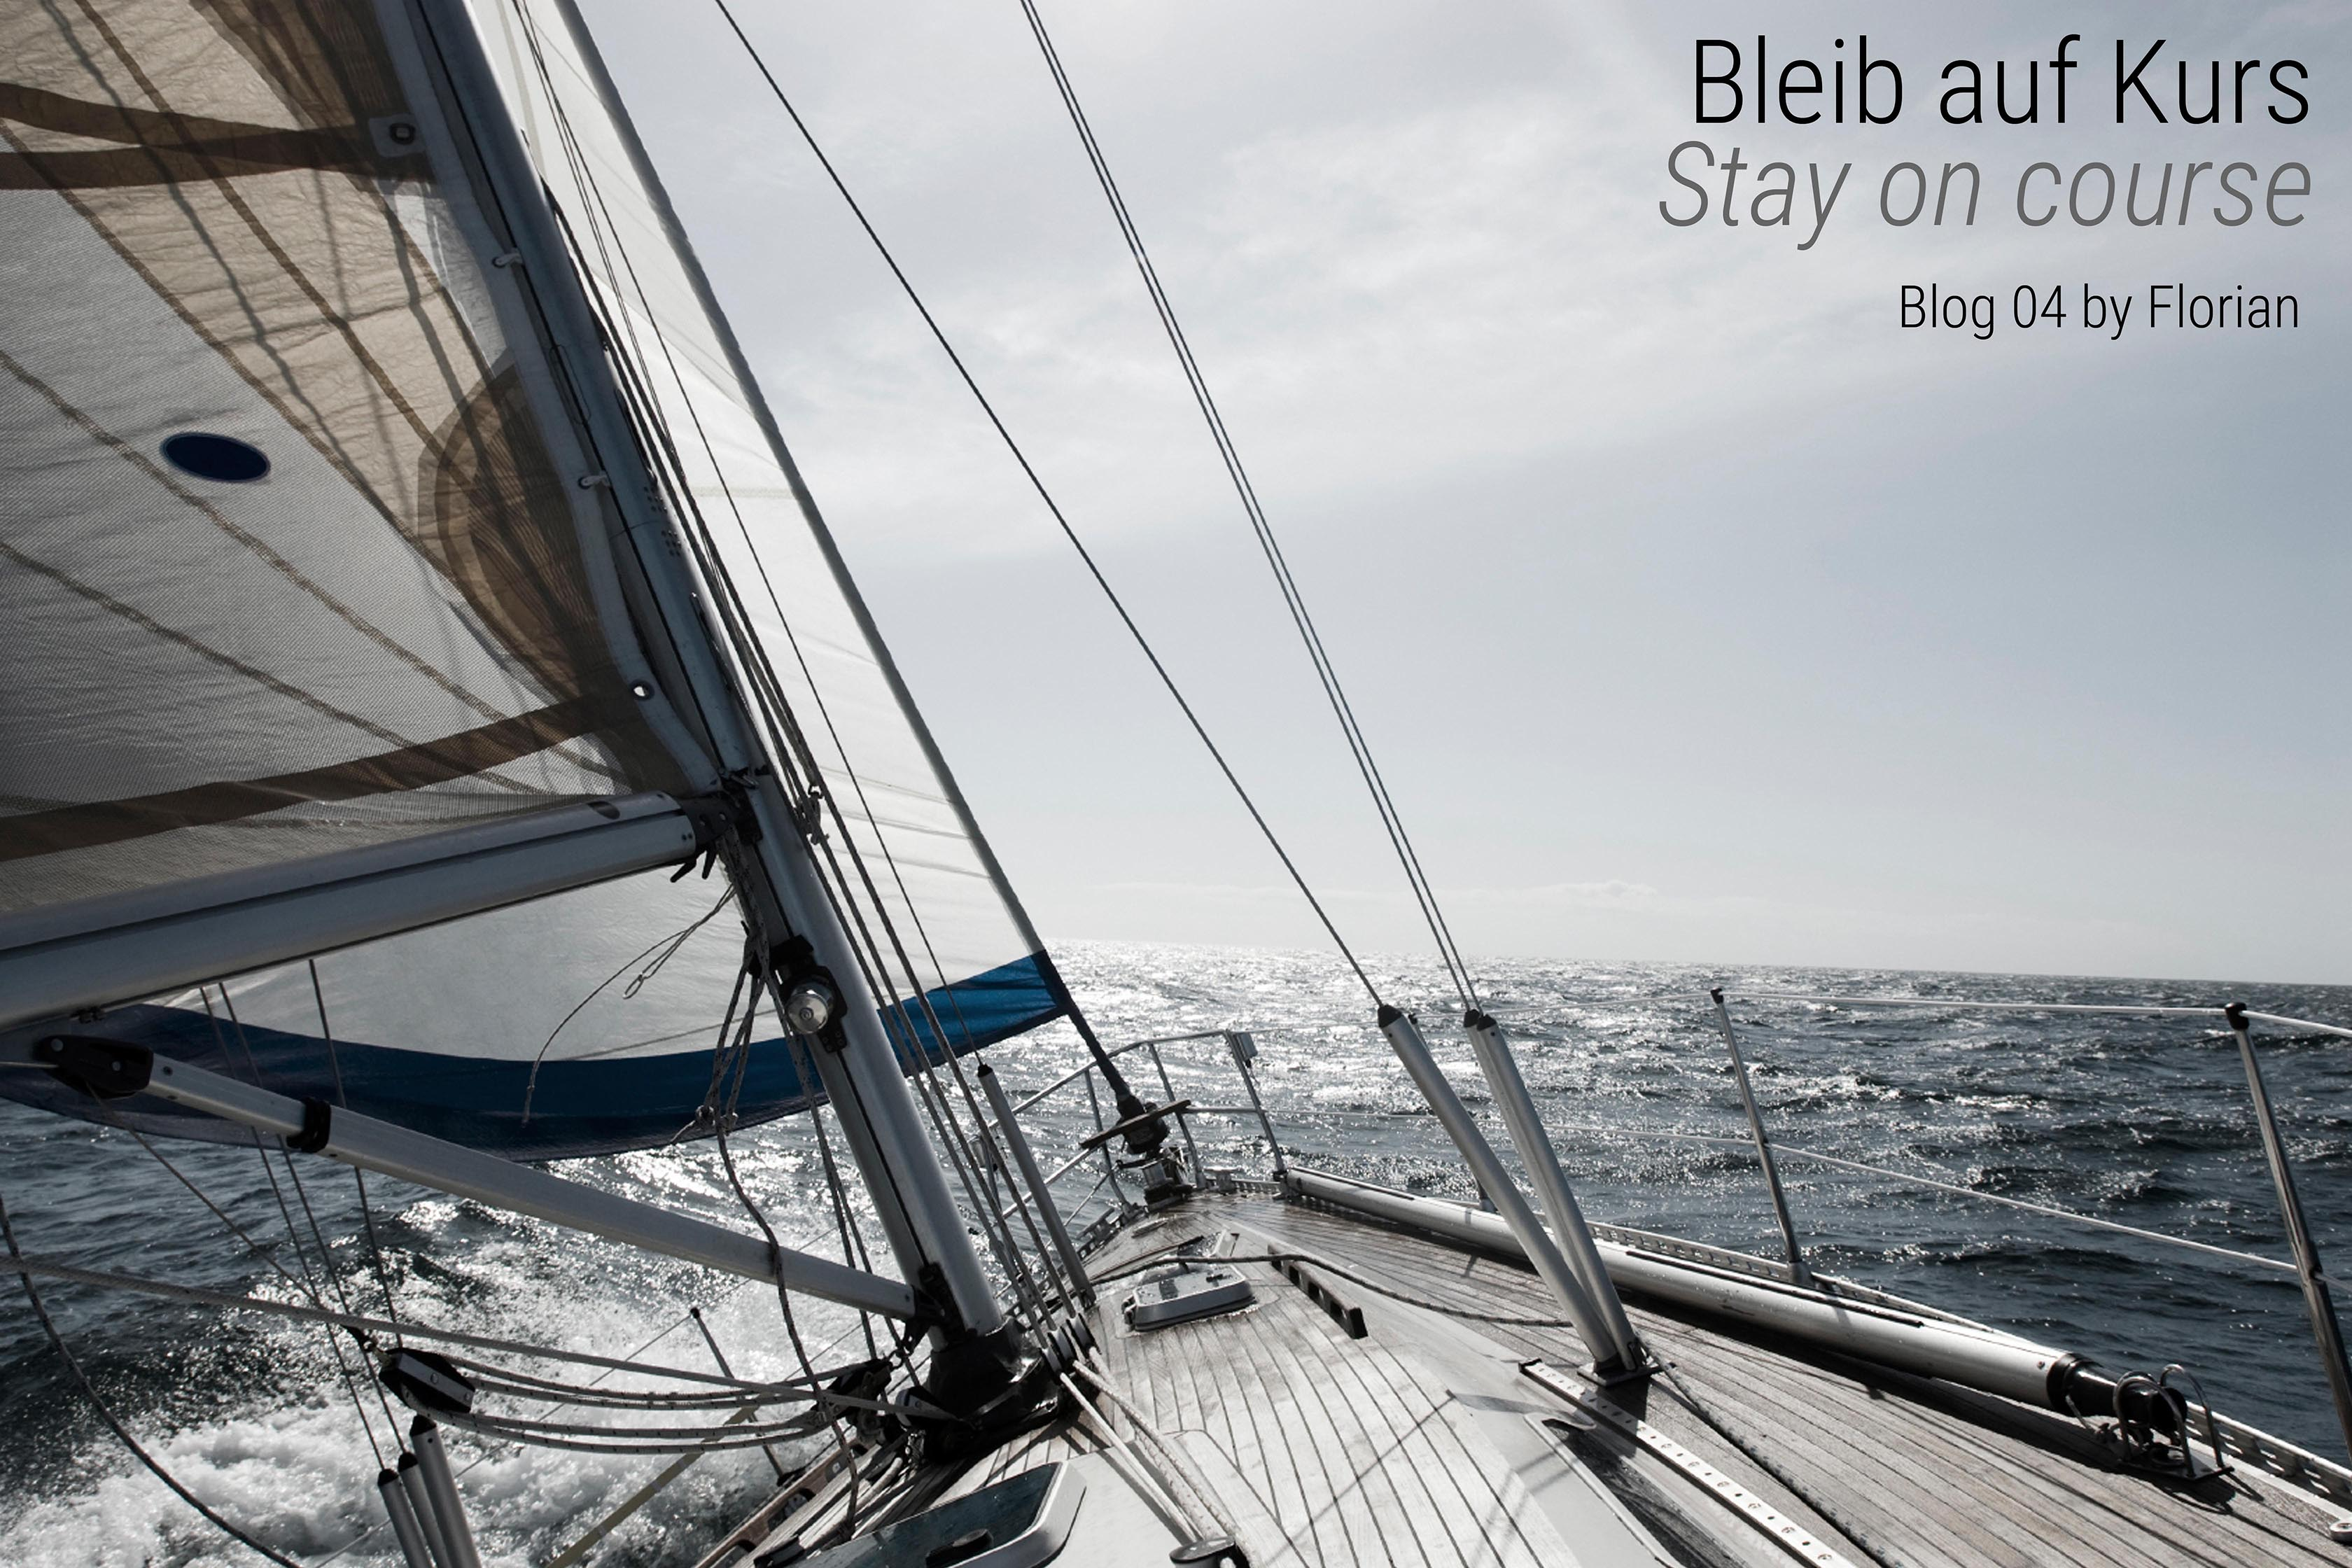 Bleib auf Kurs - Stay on course